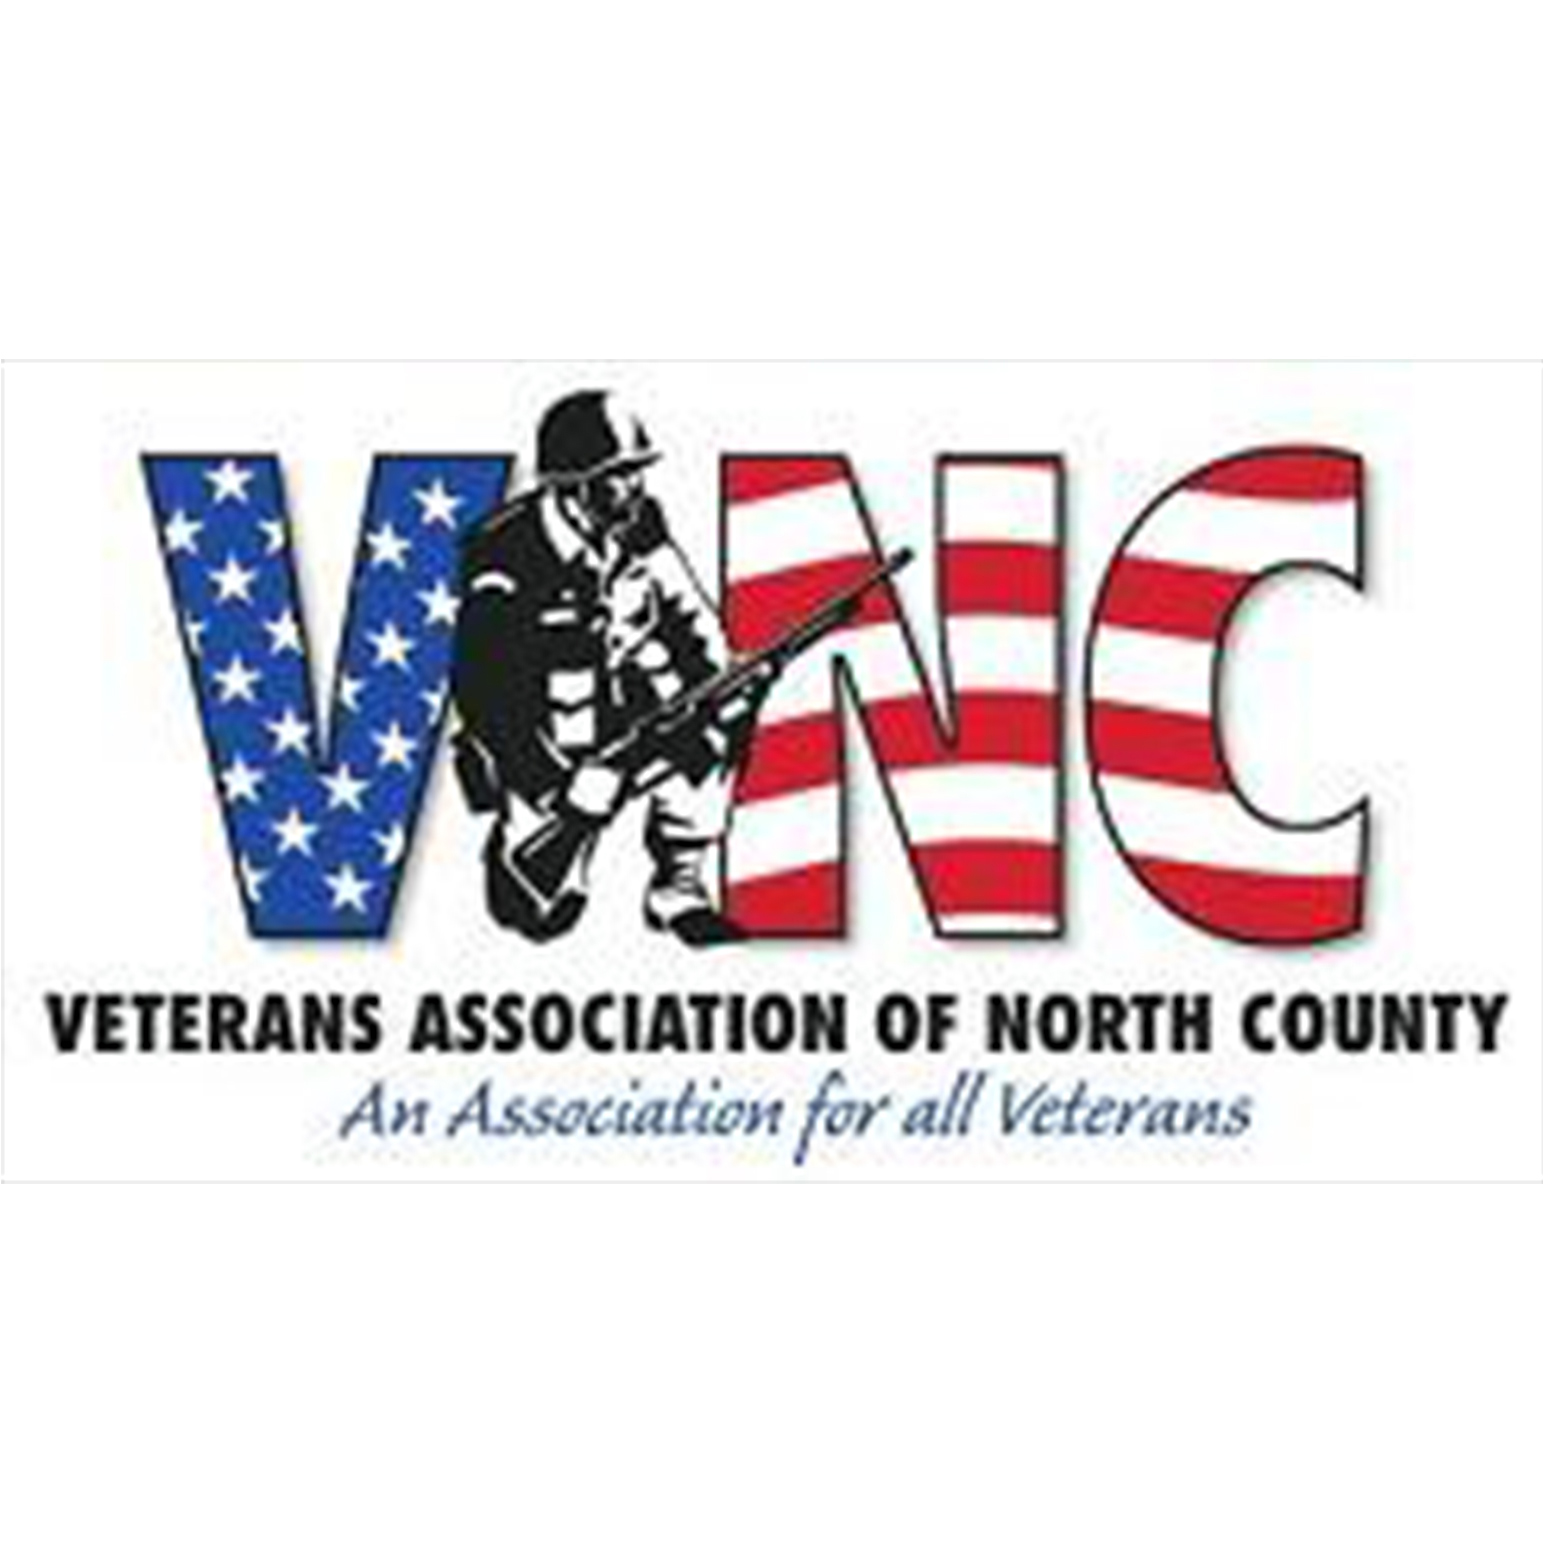 VANC- Veterans Association of North County